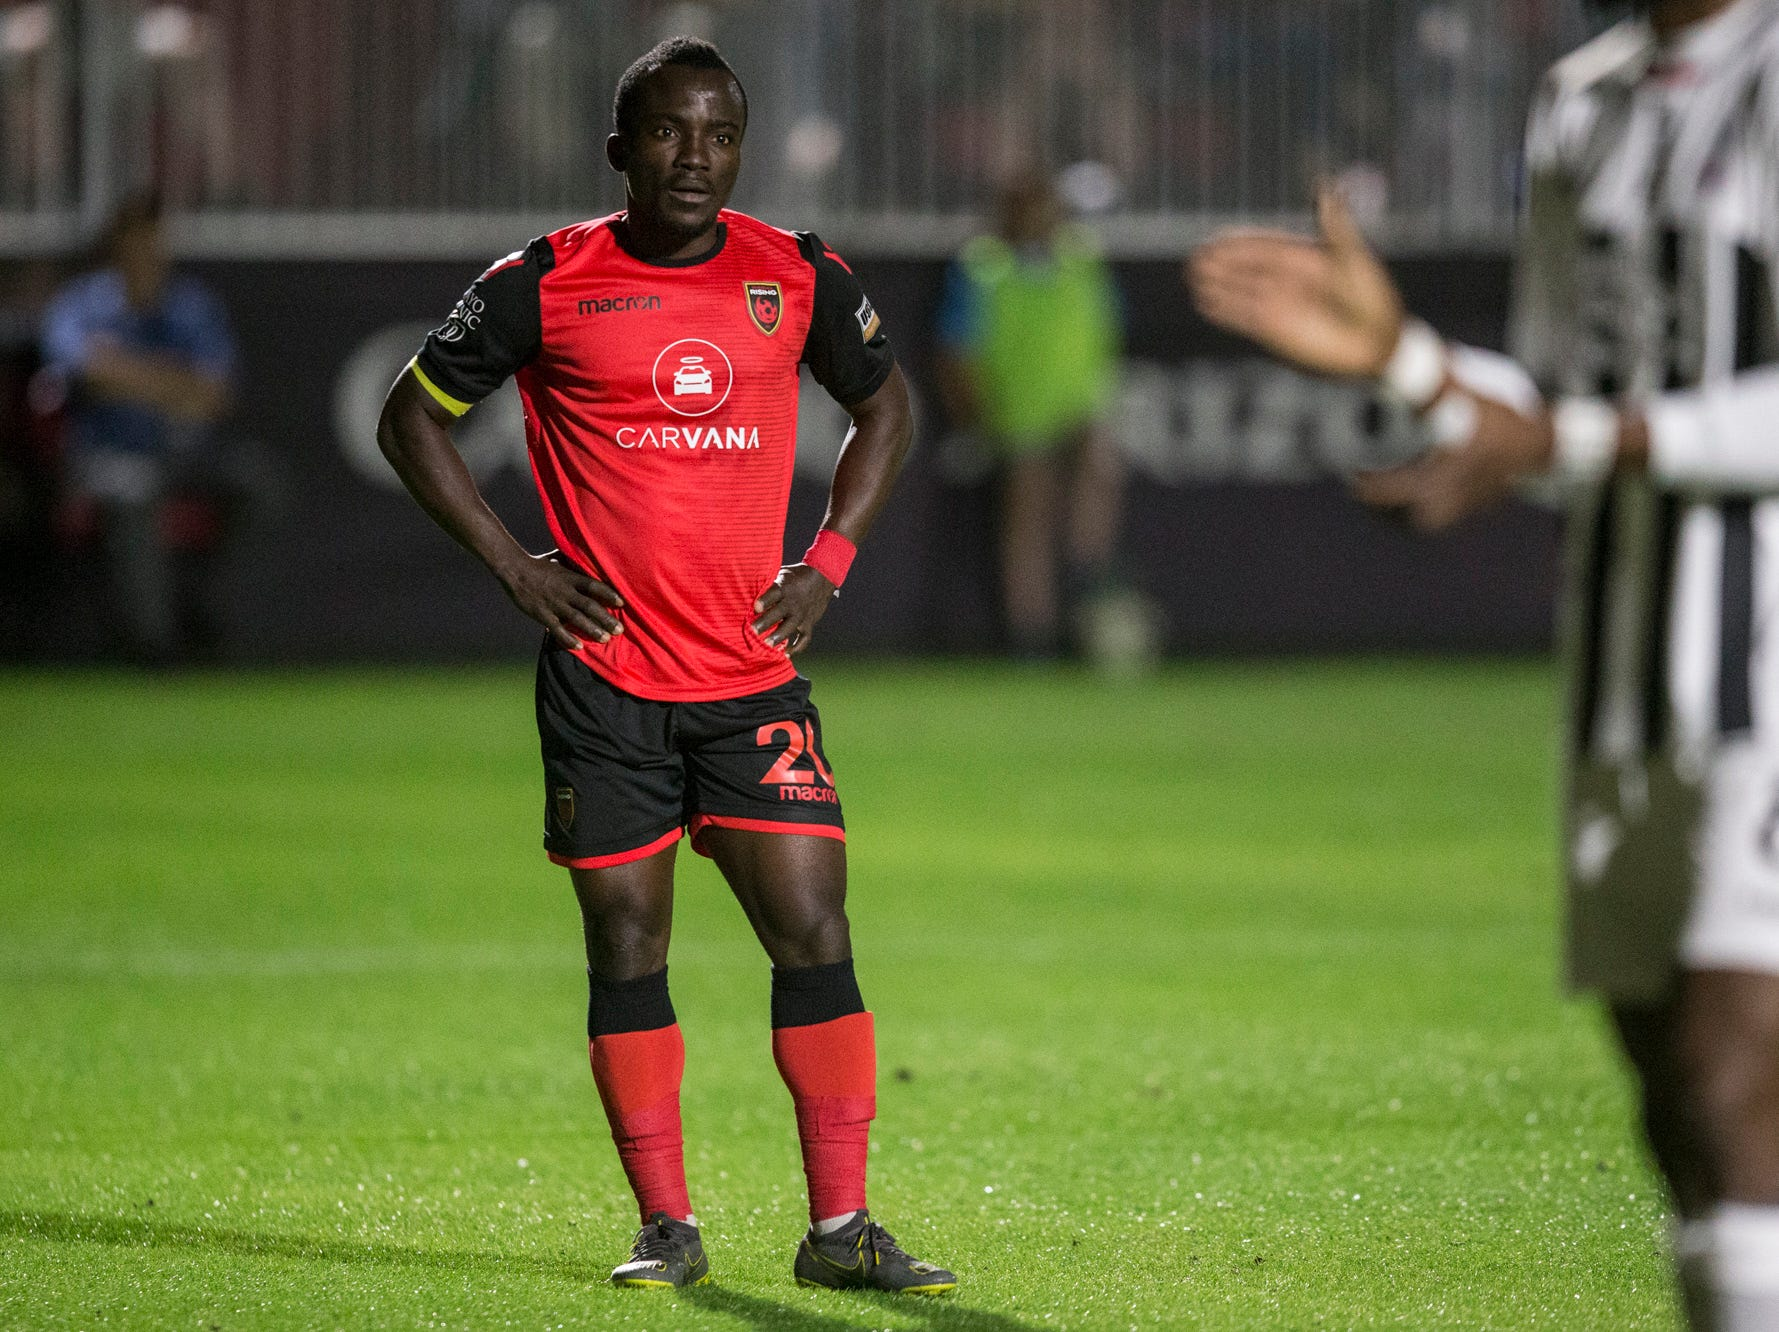 Phoenix Rising's Solomon Asante reacts after missing a shot against Colorado Springs in the first half on Saturday, Mar. 30, 2019, at Casino Arizona Field in Tempe, Ariz.